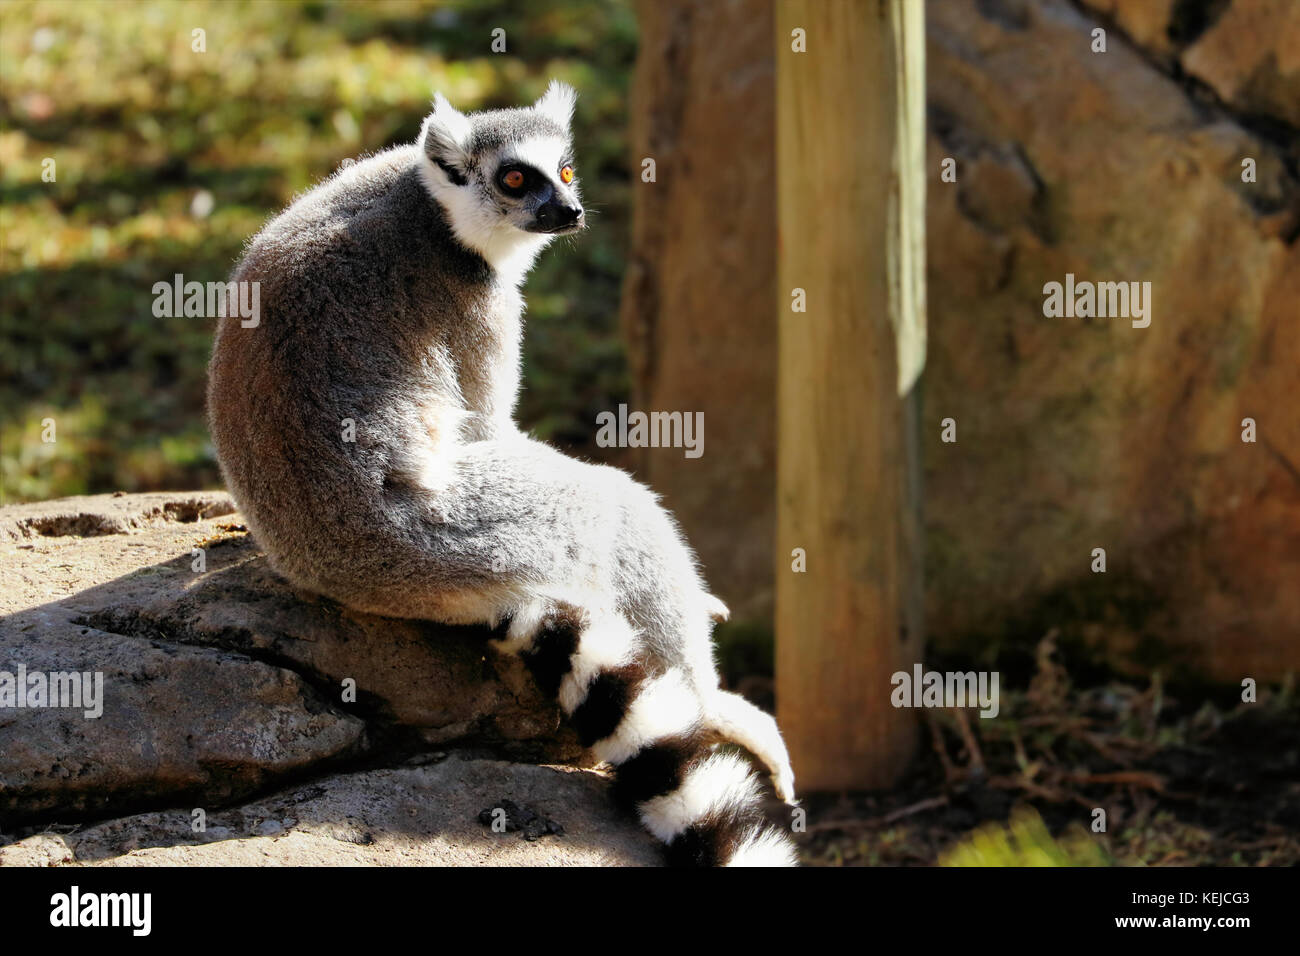 Ring-tailed lemur (lemur catta), South Africa - Stock Image